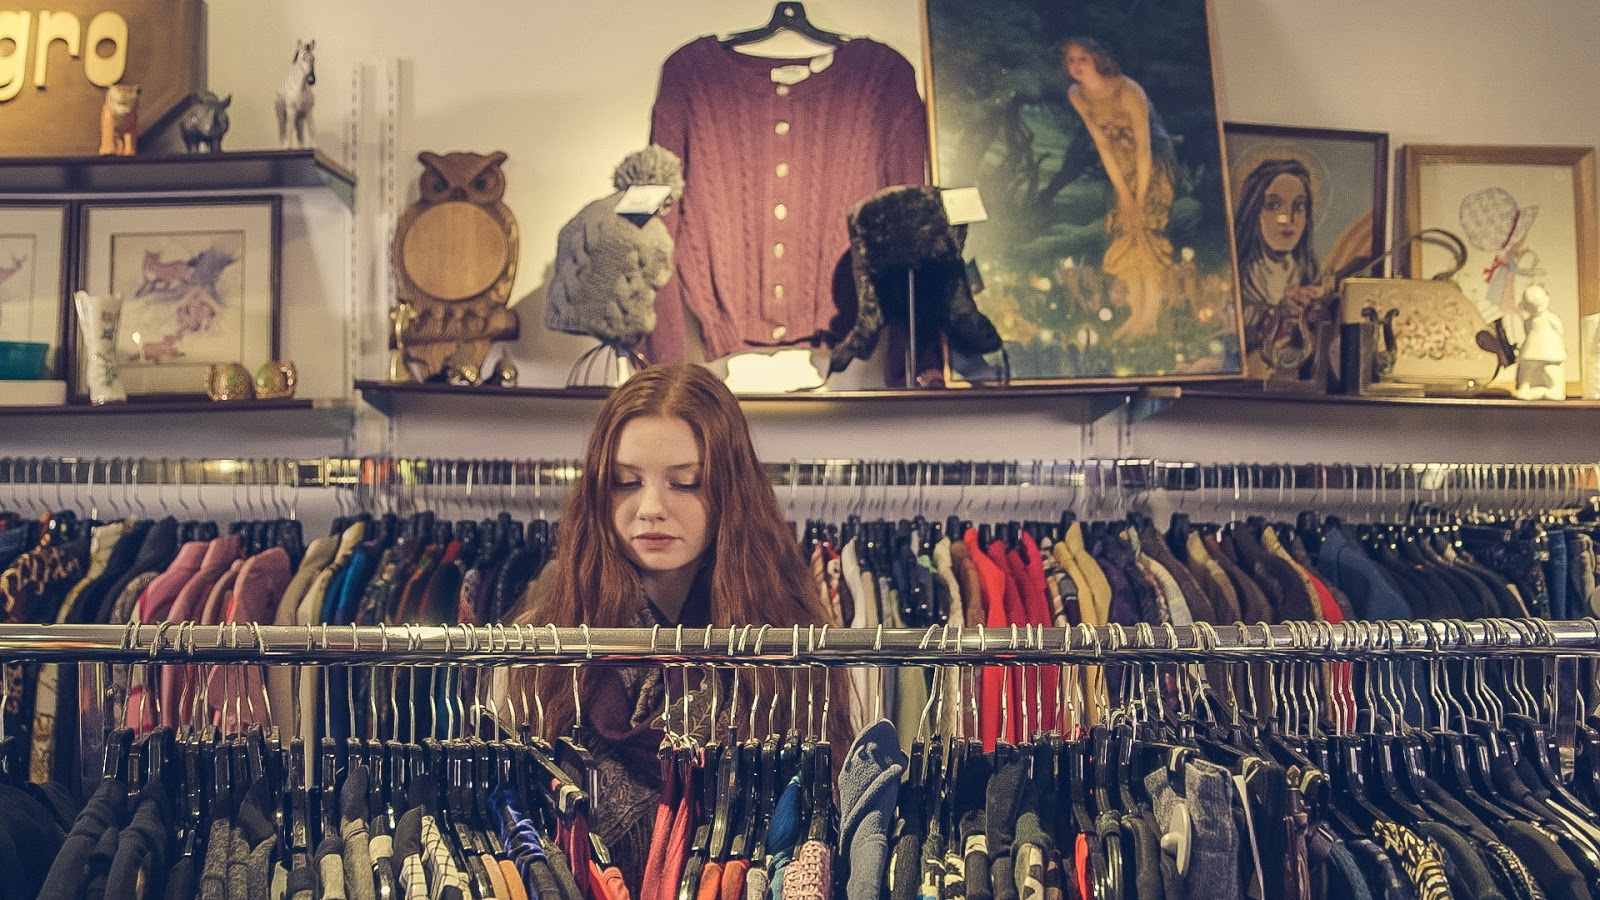 A young girl stands at a clothing rack shopping at a thrift shop.